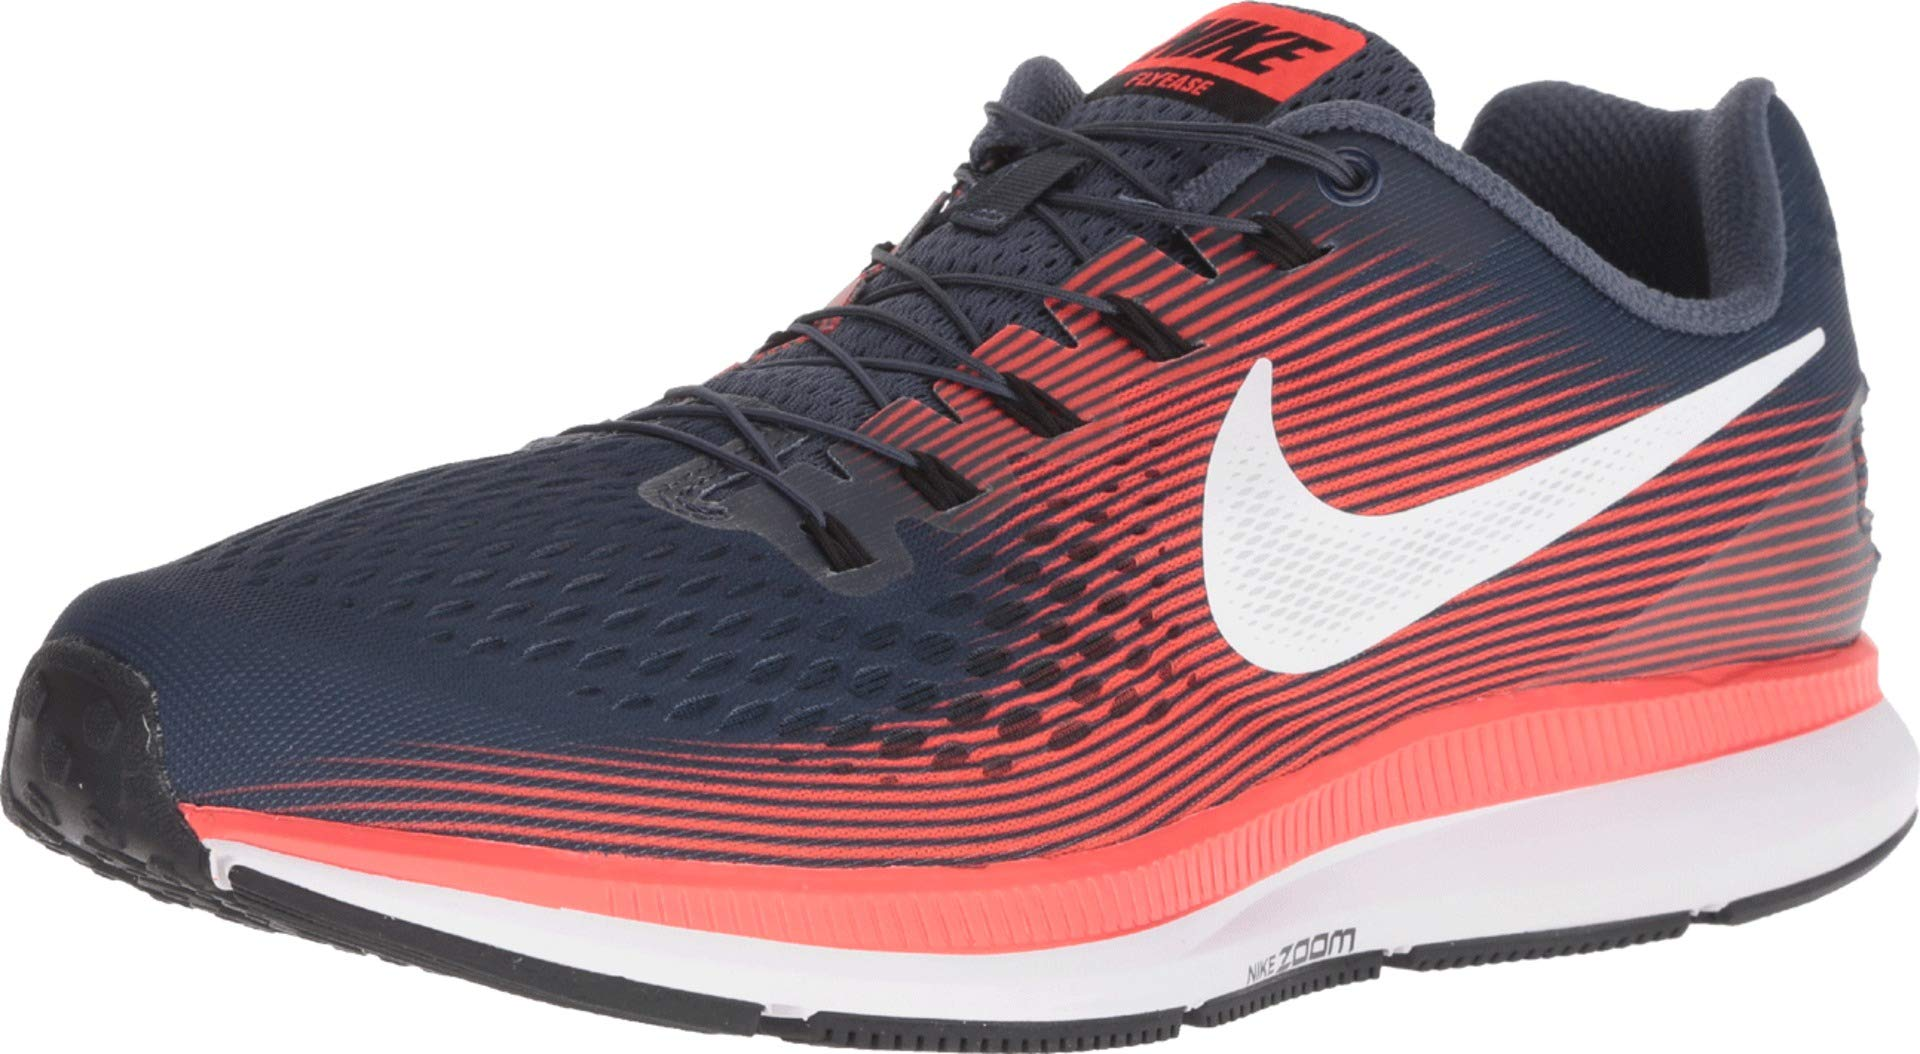 Nike Men's Zoom Pegasus 34 Flyease Running Shoe (11.5 D(M) US, Thunder Blue/White-Bright Crimson-Black)